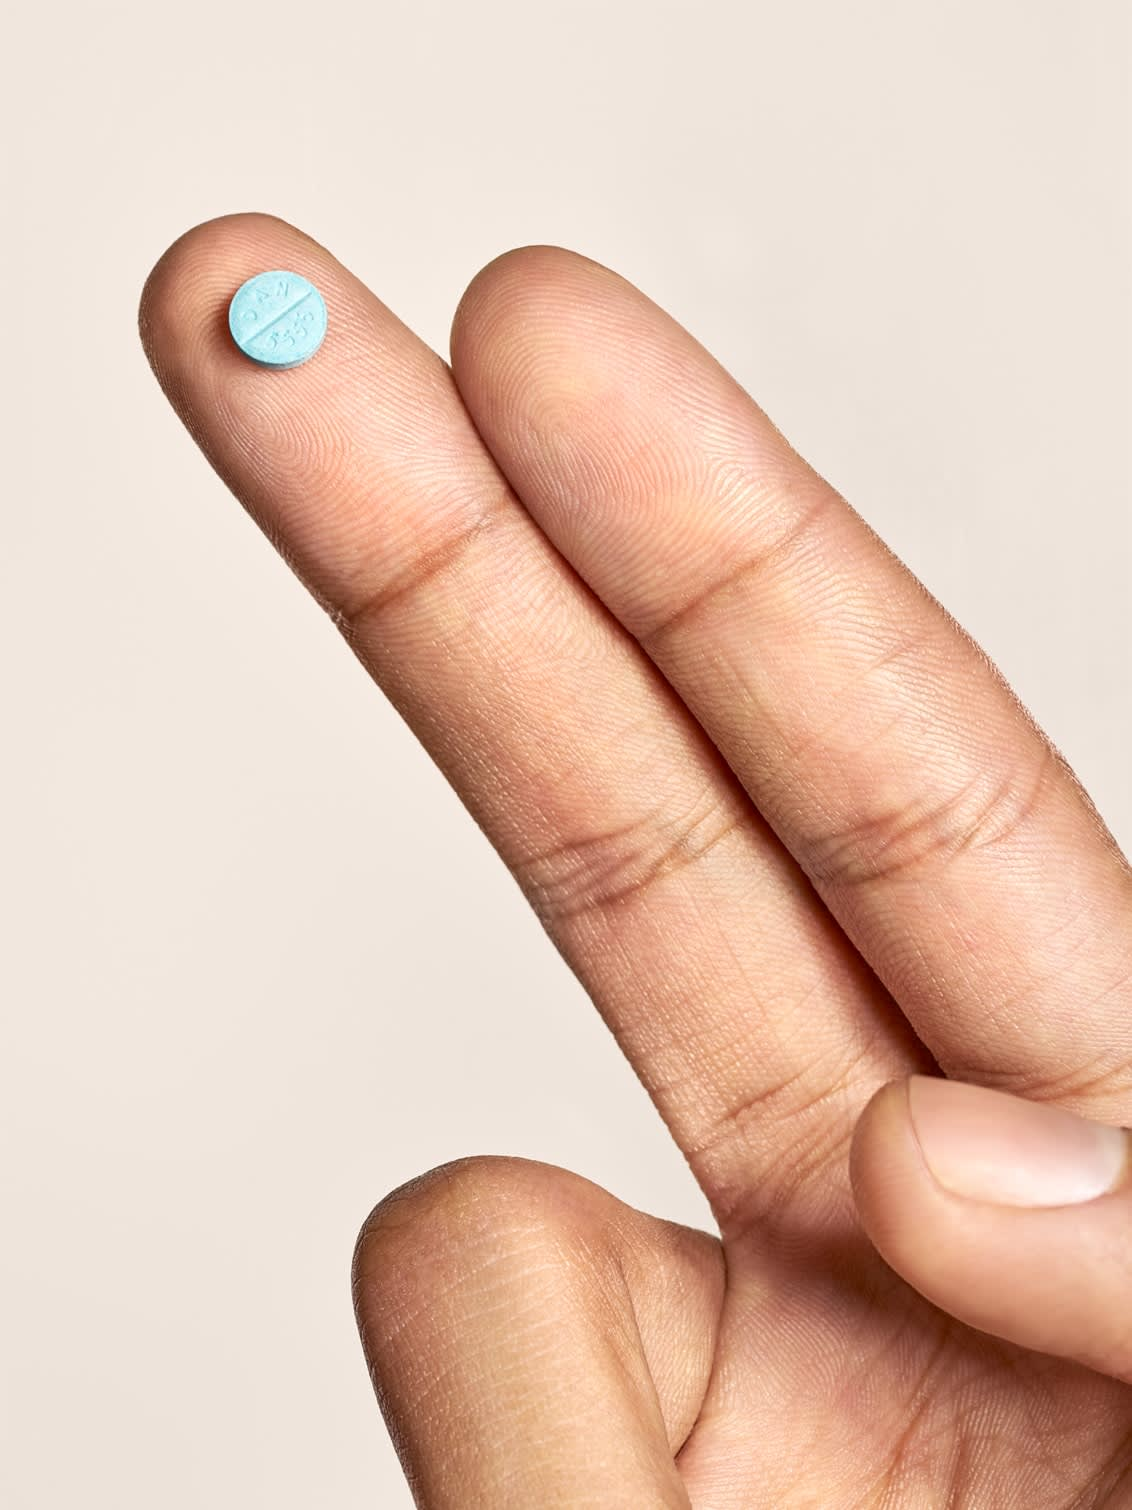 A man holding a small beta blocker pill